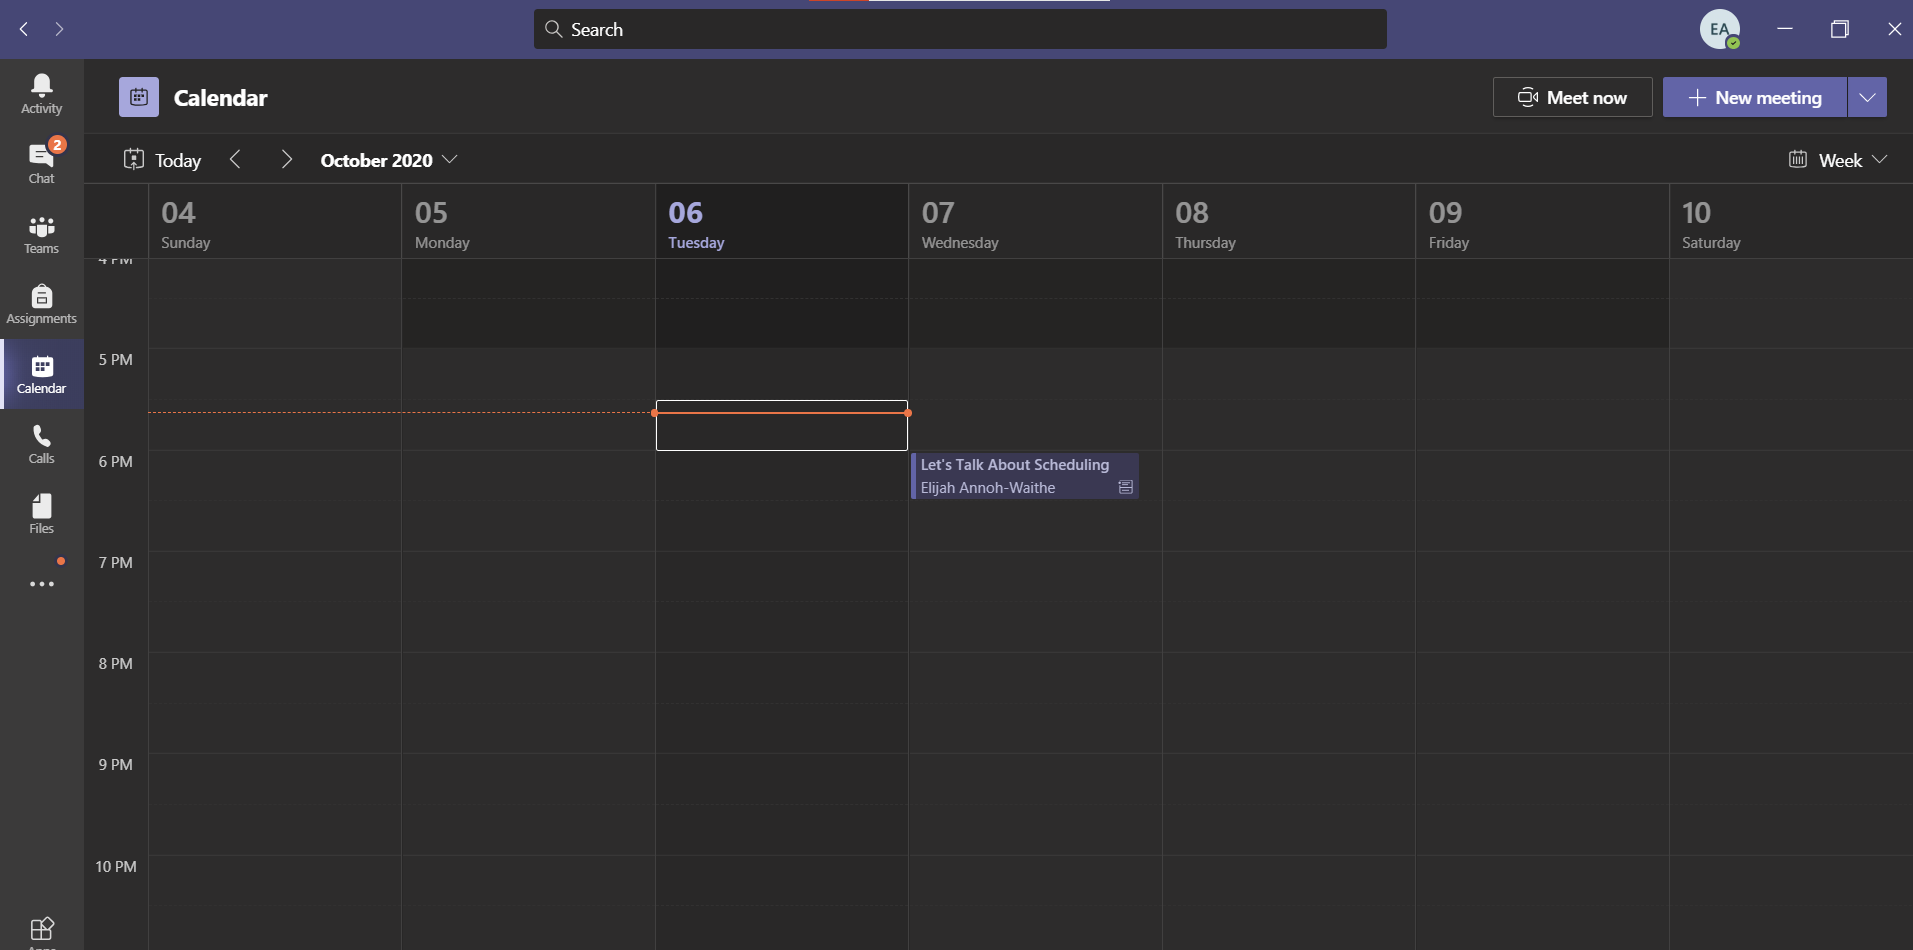 An image showing how to schedule meetings